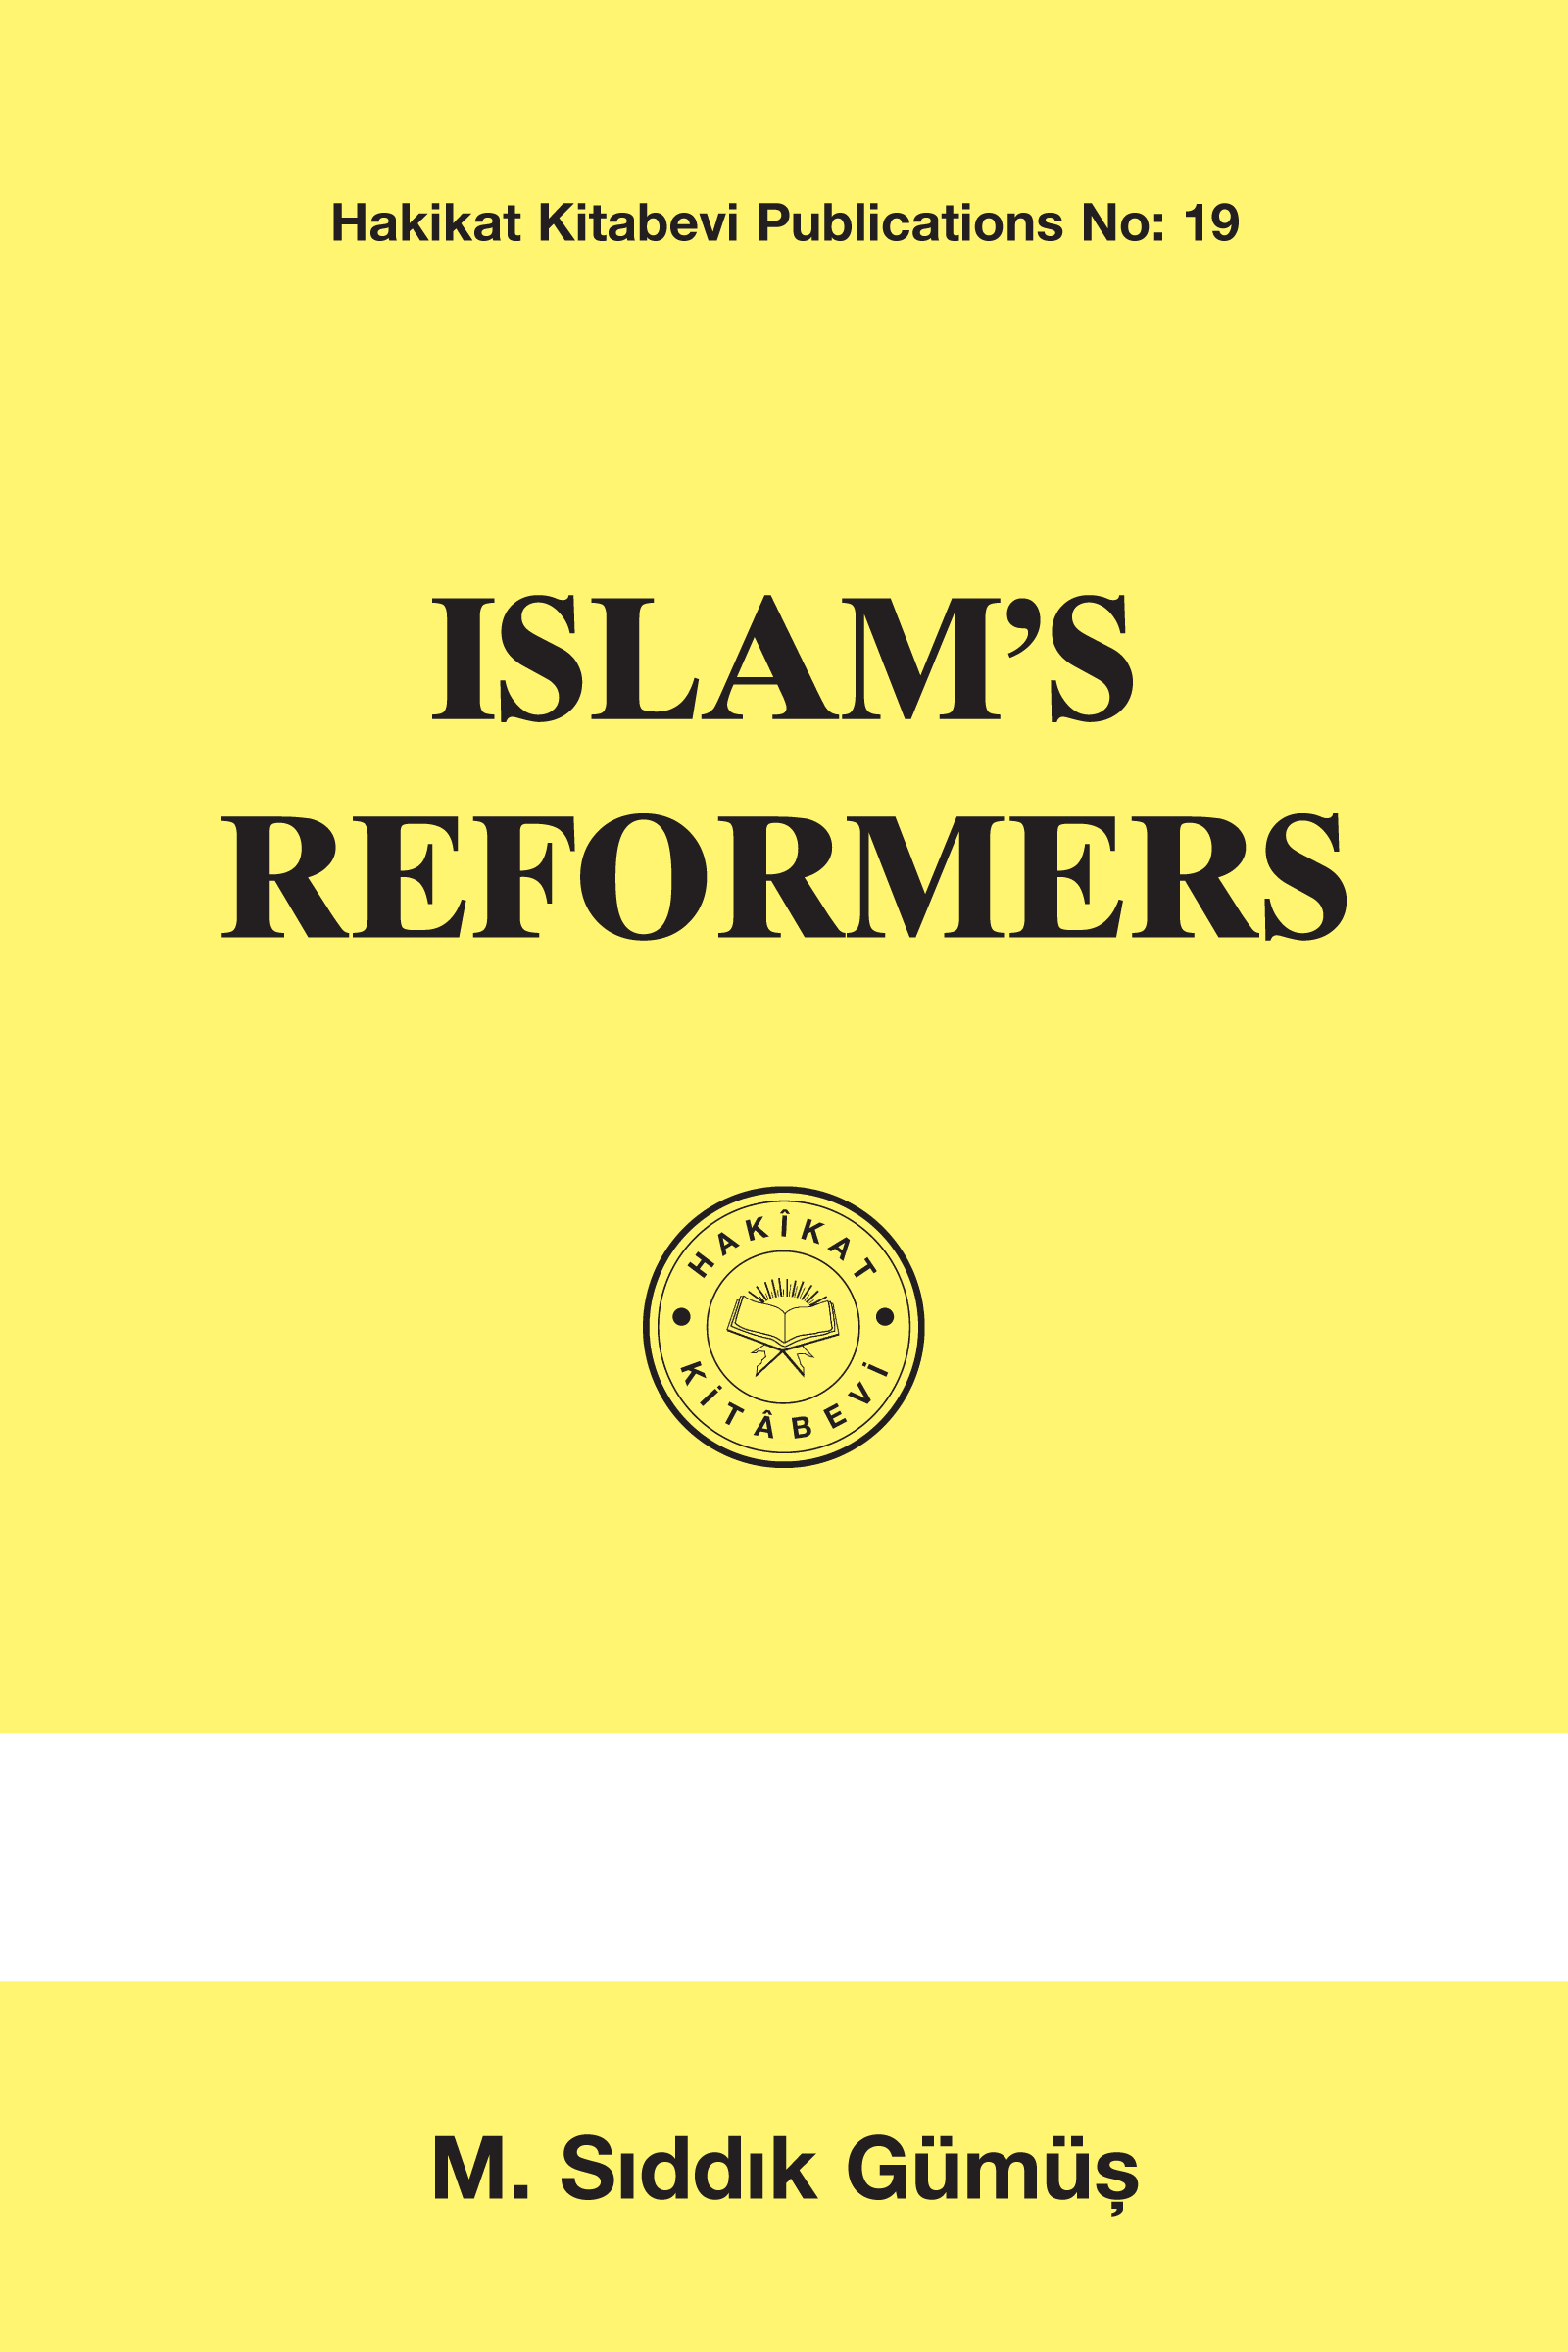 Islam's Reformers